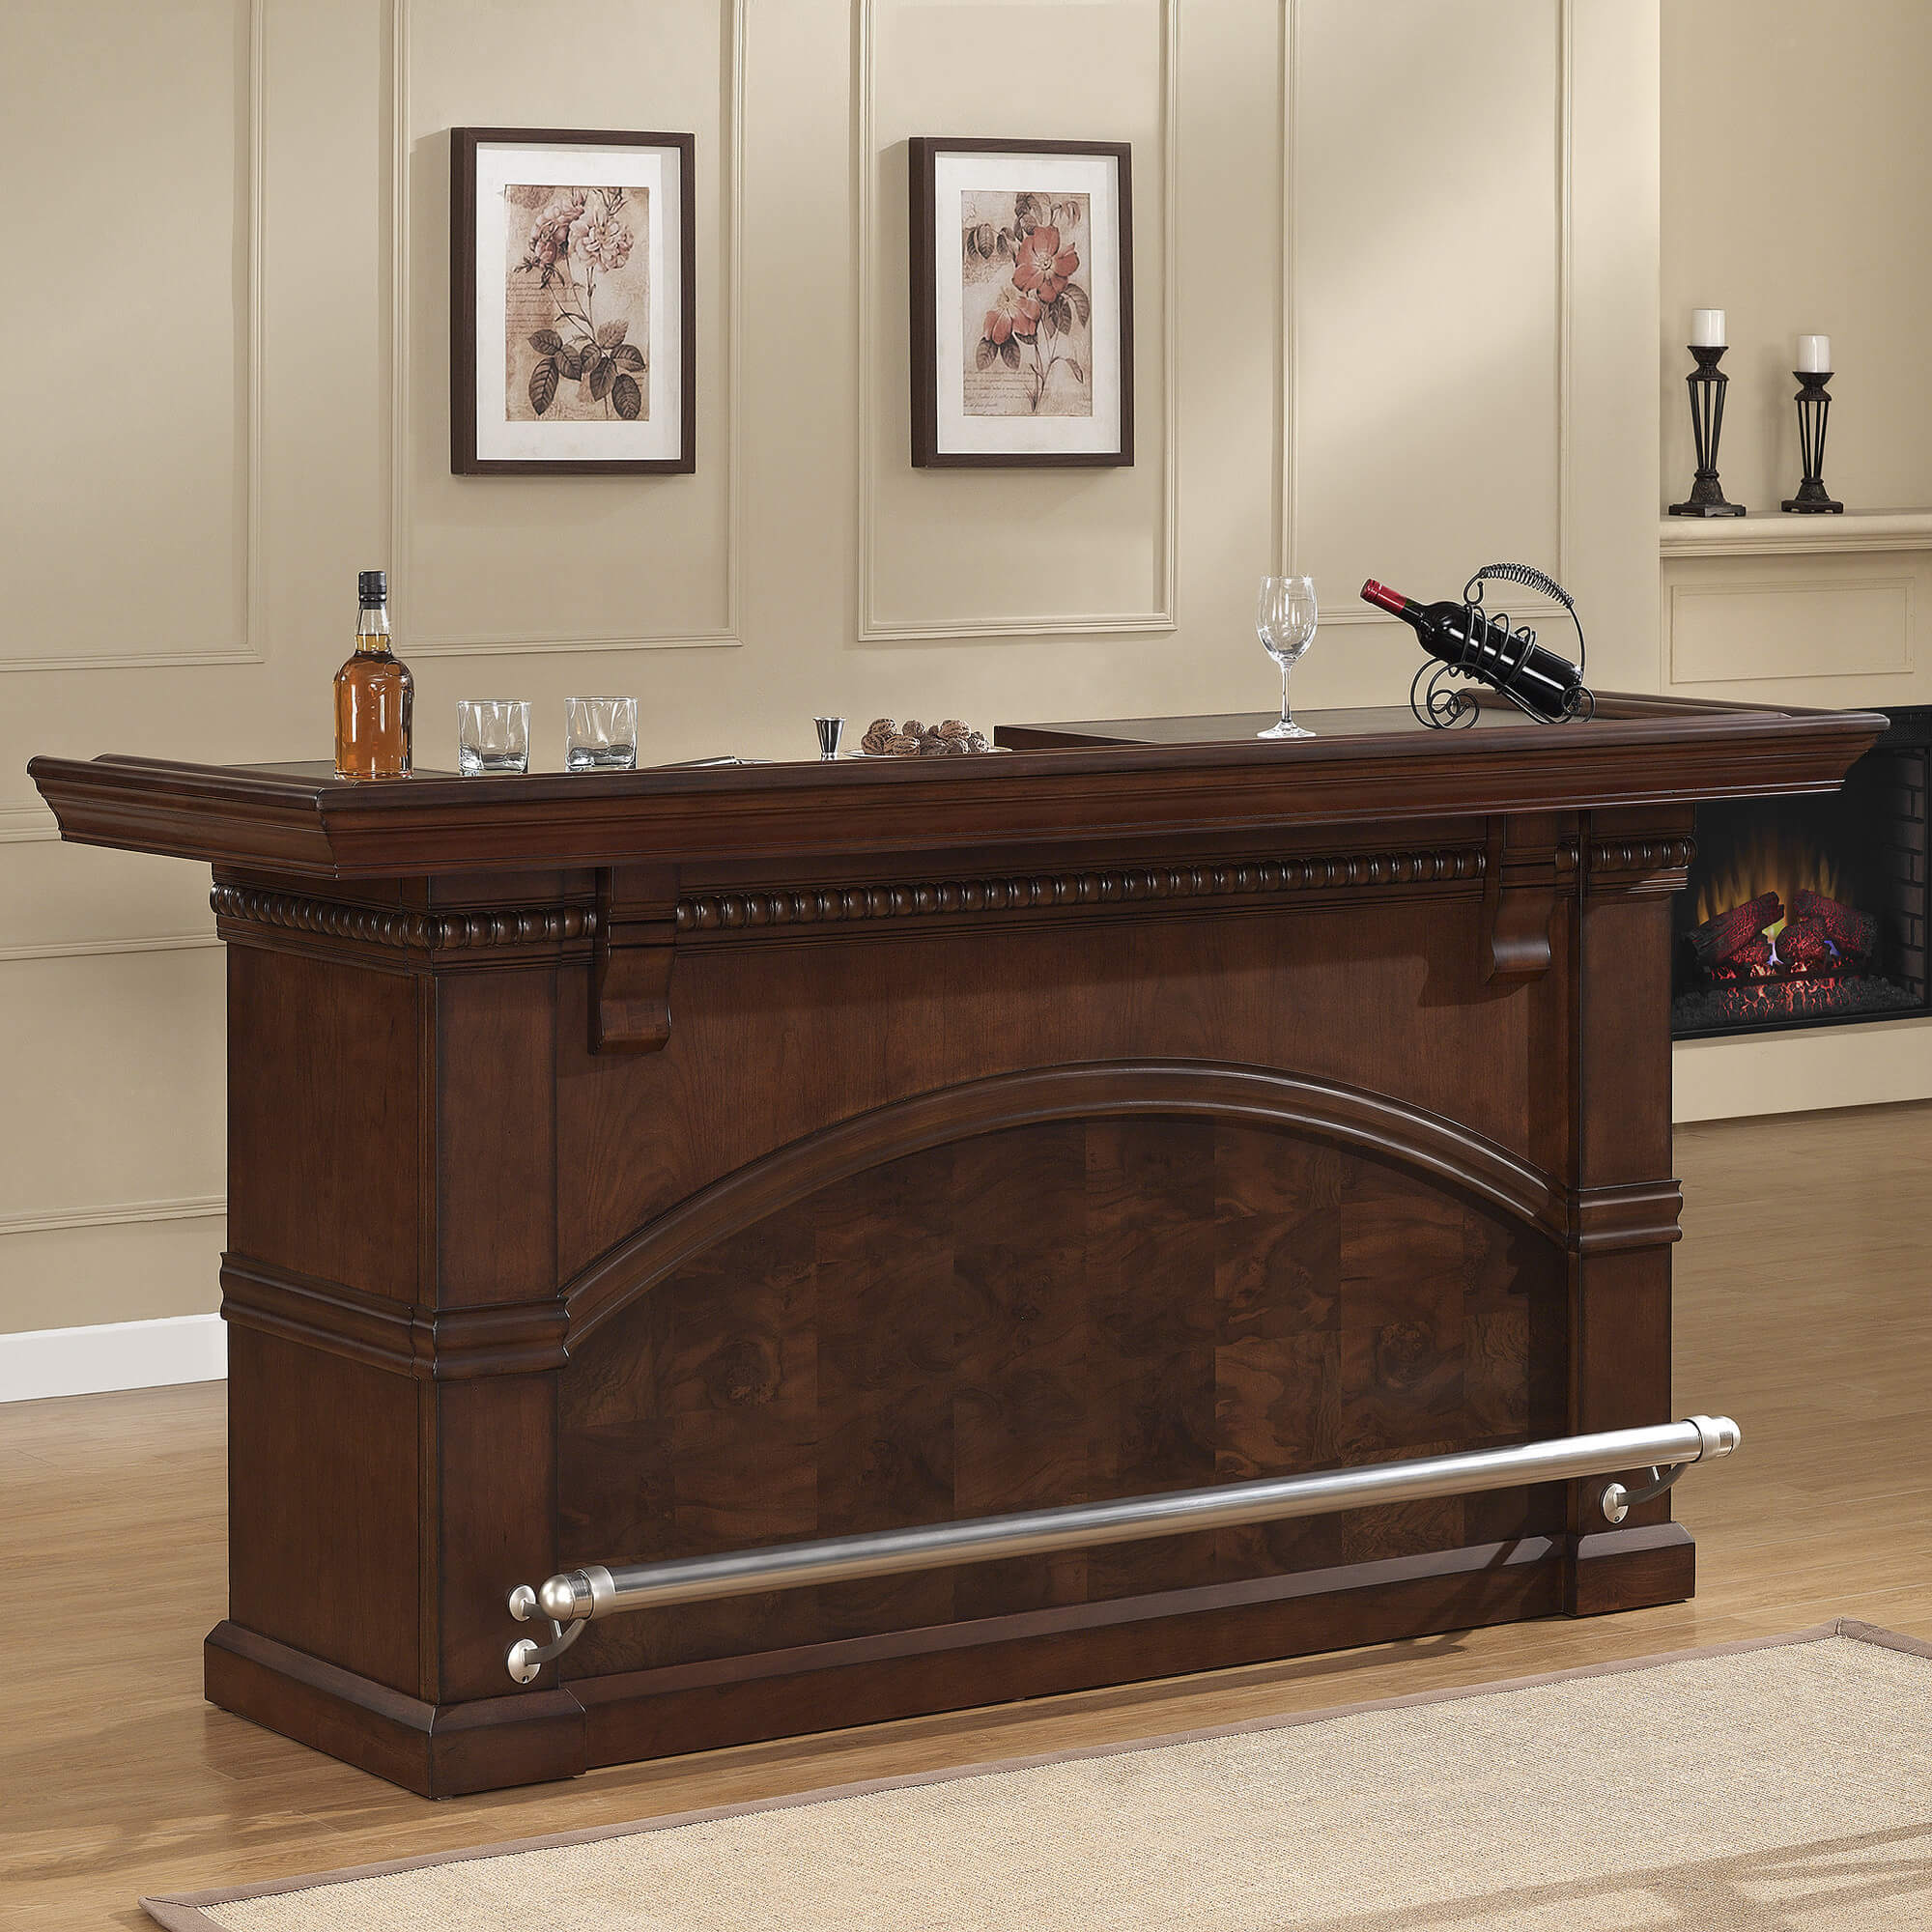 This is a beautiful home bar unit with sturdy foot railing, extensive storage including a wine rack and locking storage, and sturdy construction.